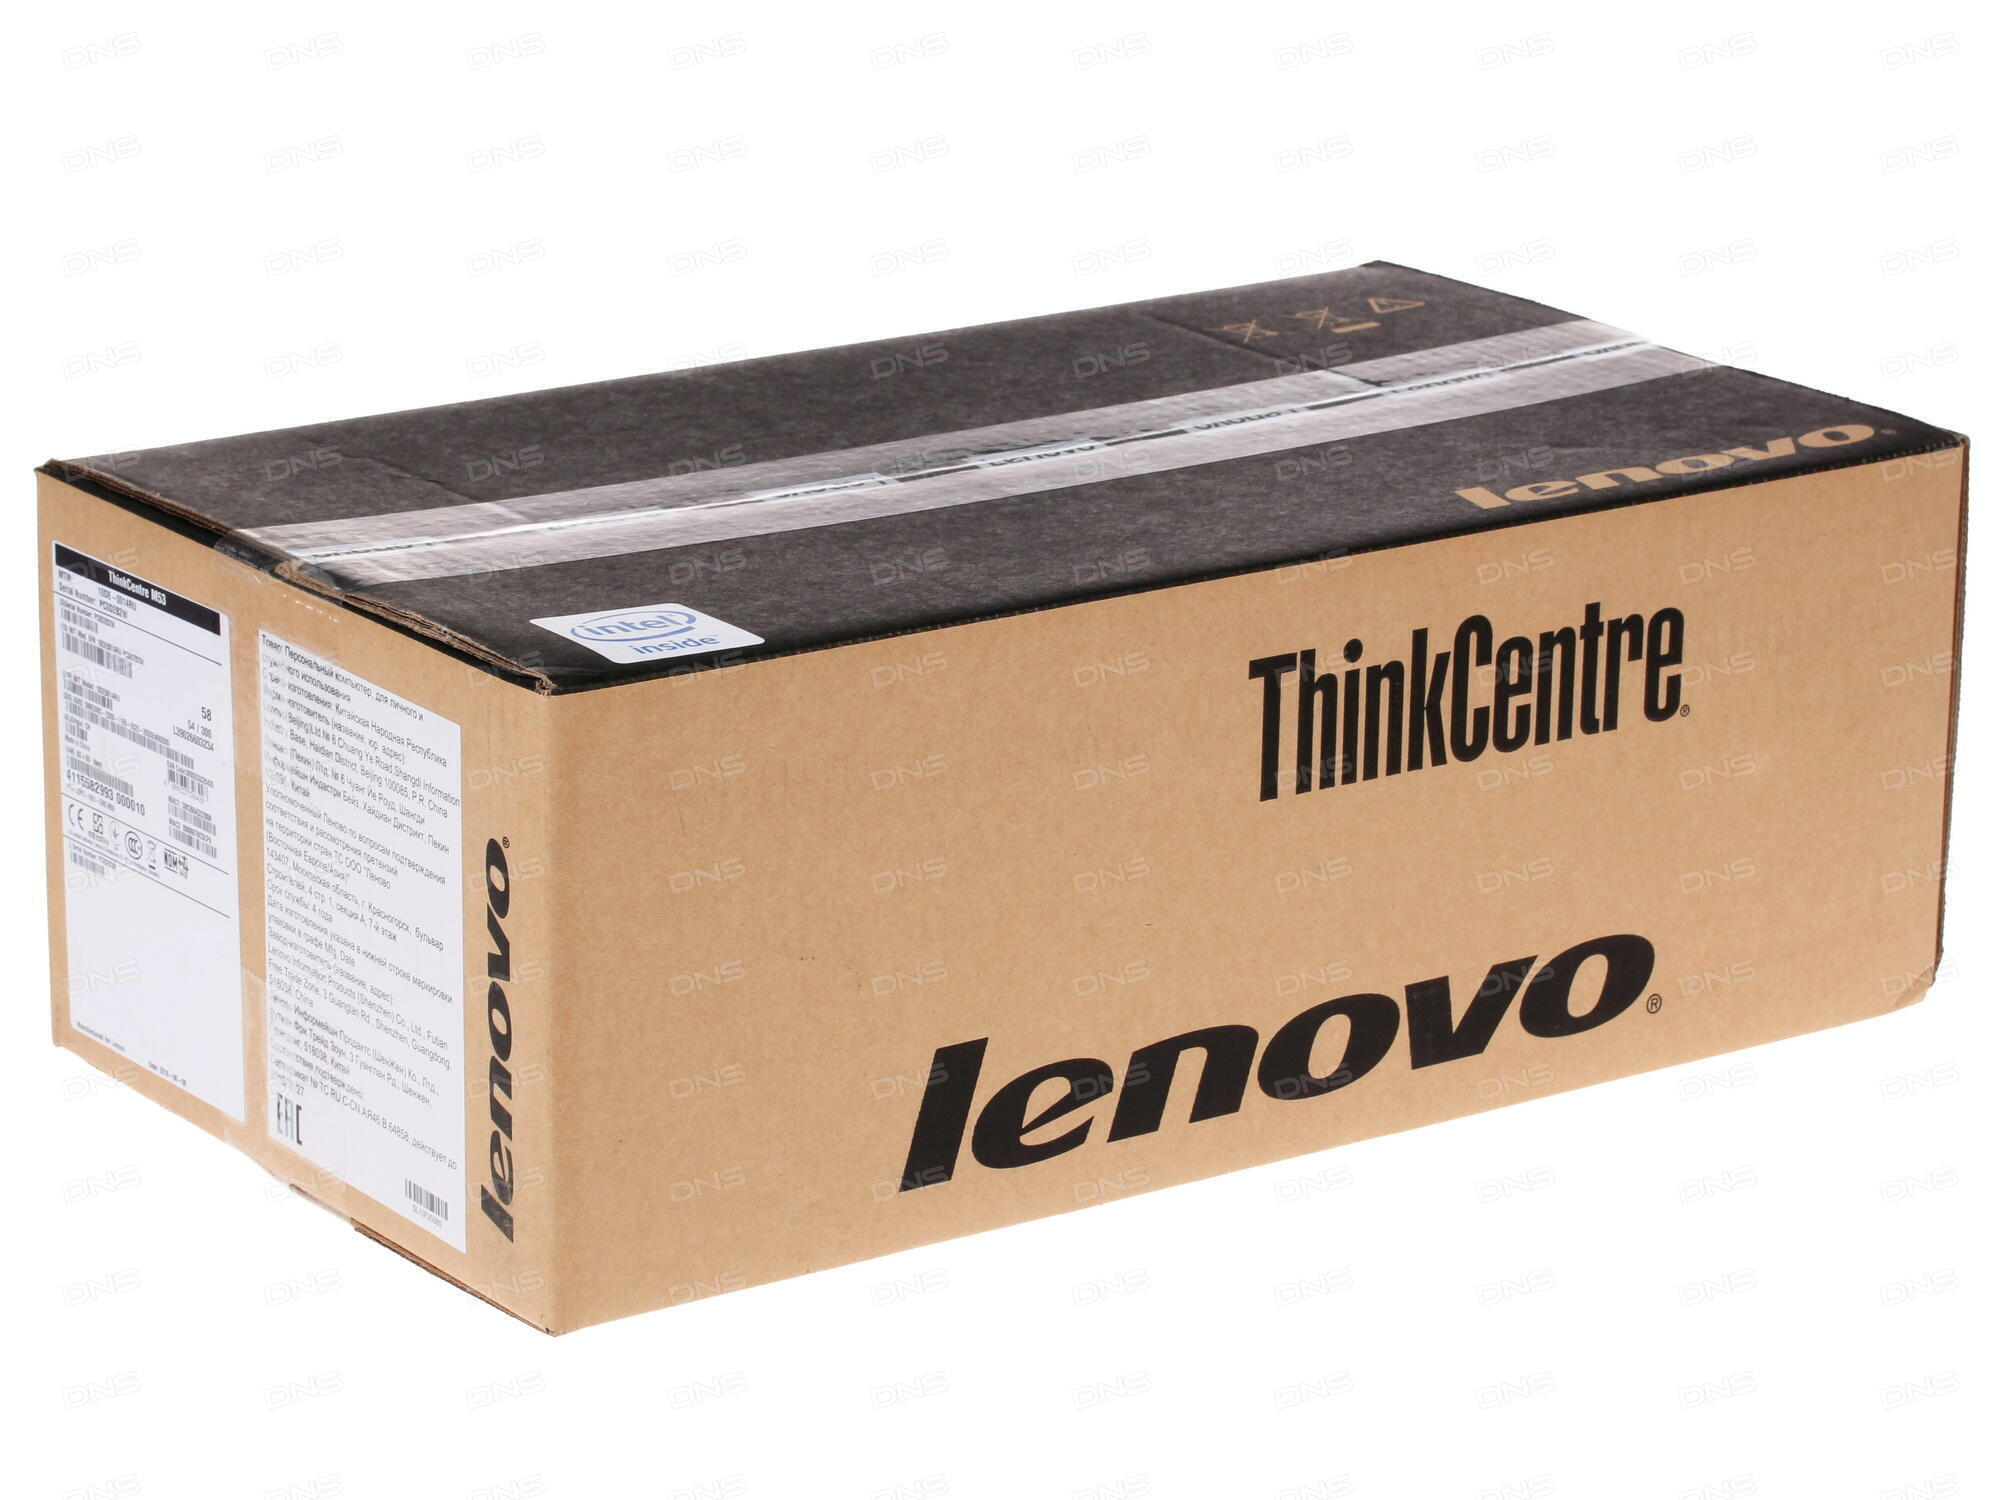 Неттоп Lenovo ThinkCentre M600 TINY slim 10GB000SRU Celeron J3060 (1.6)/2Gb/500Gb/Int:Intel HD/WiFi/BT/6xUSB 3.0/2xDP/LAN/Win 10 Black